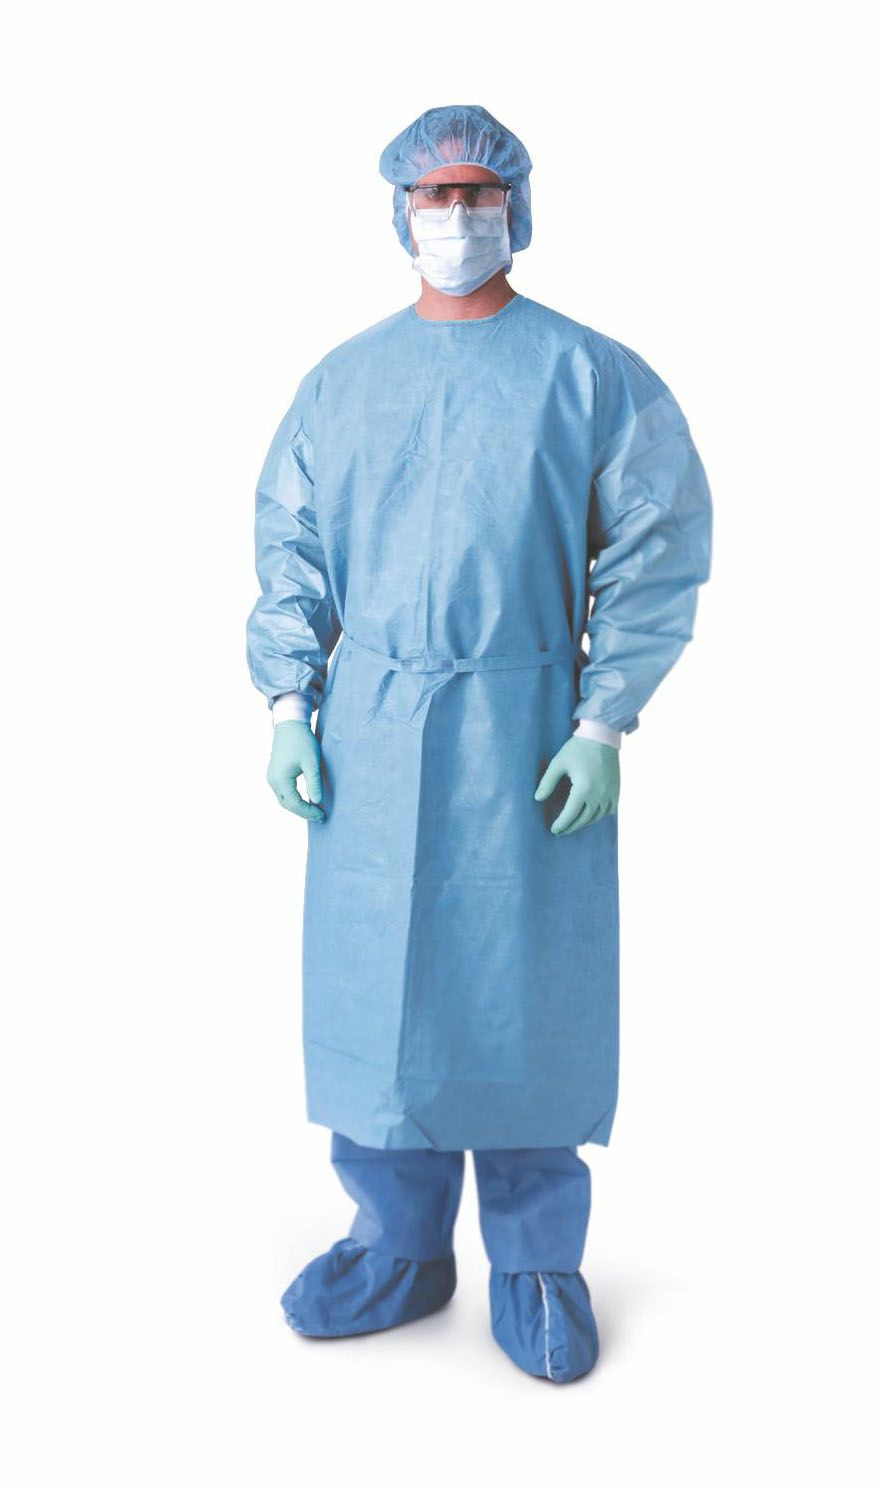 Medline Prevention Plus Isolation Gown - Prev Plus, Chemo, Knitcf ...